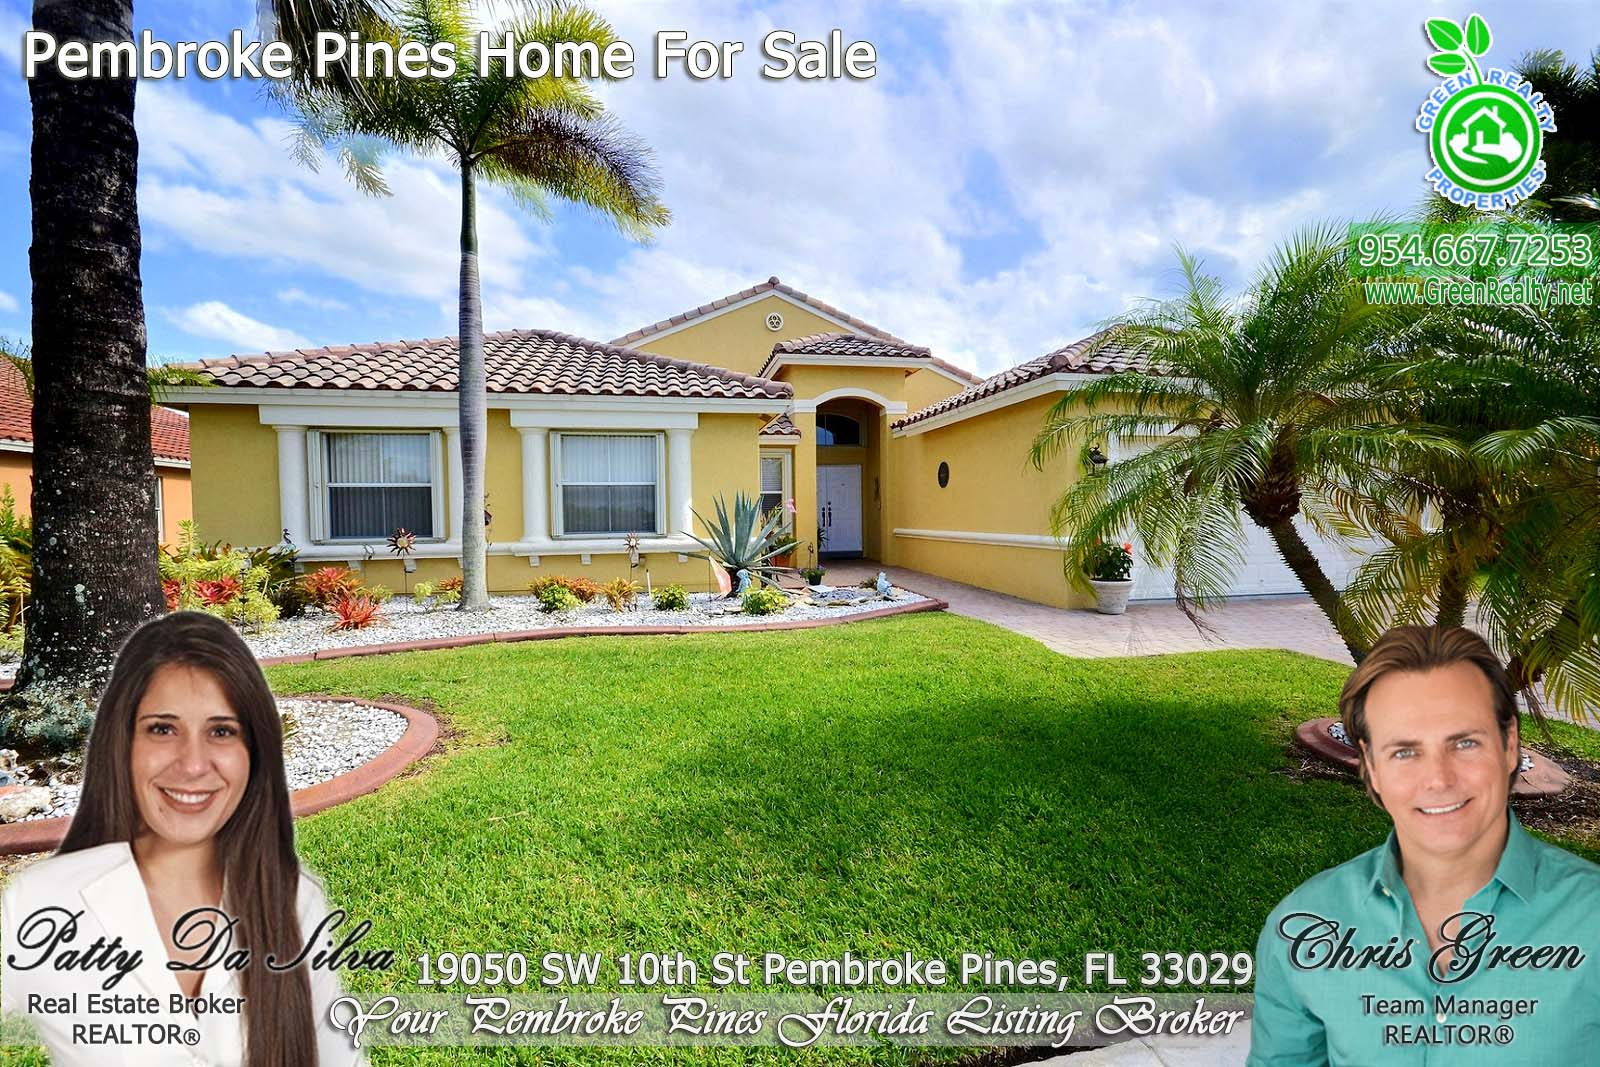 1 Encantada Homes For Sale on Pembroke Pines (2)